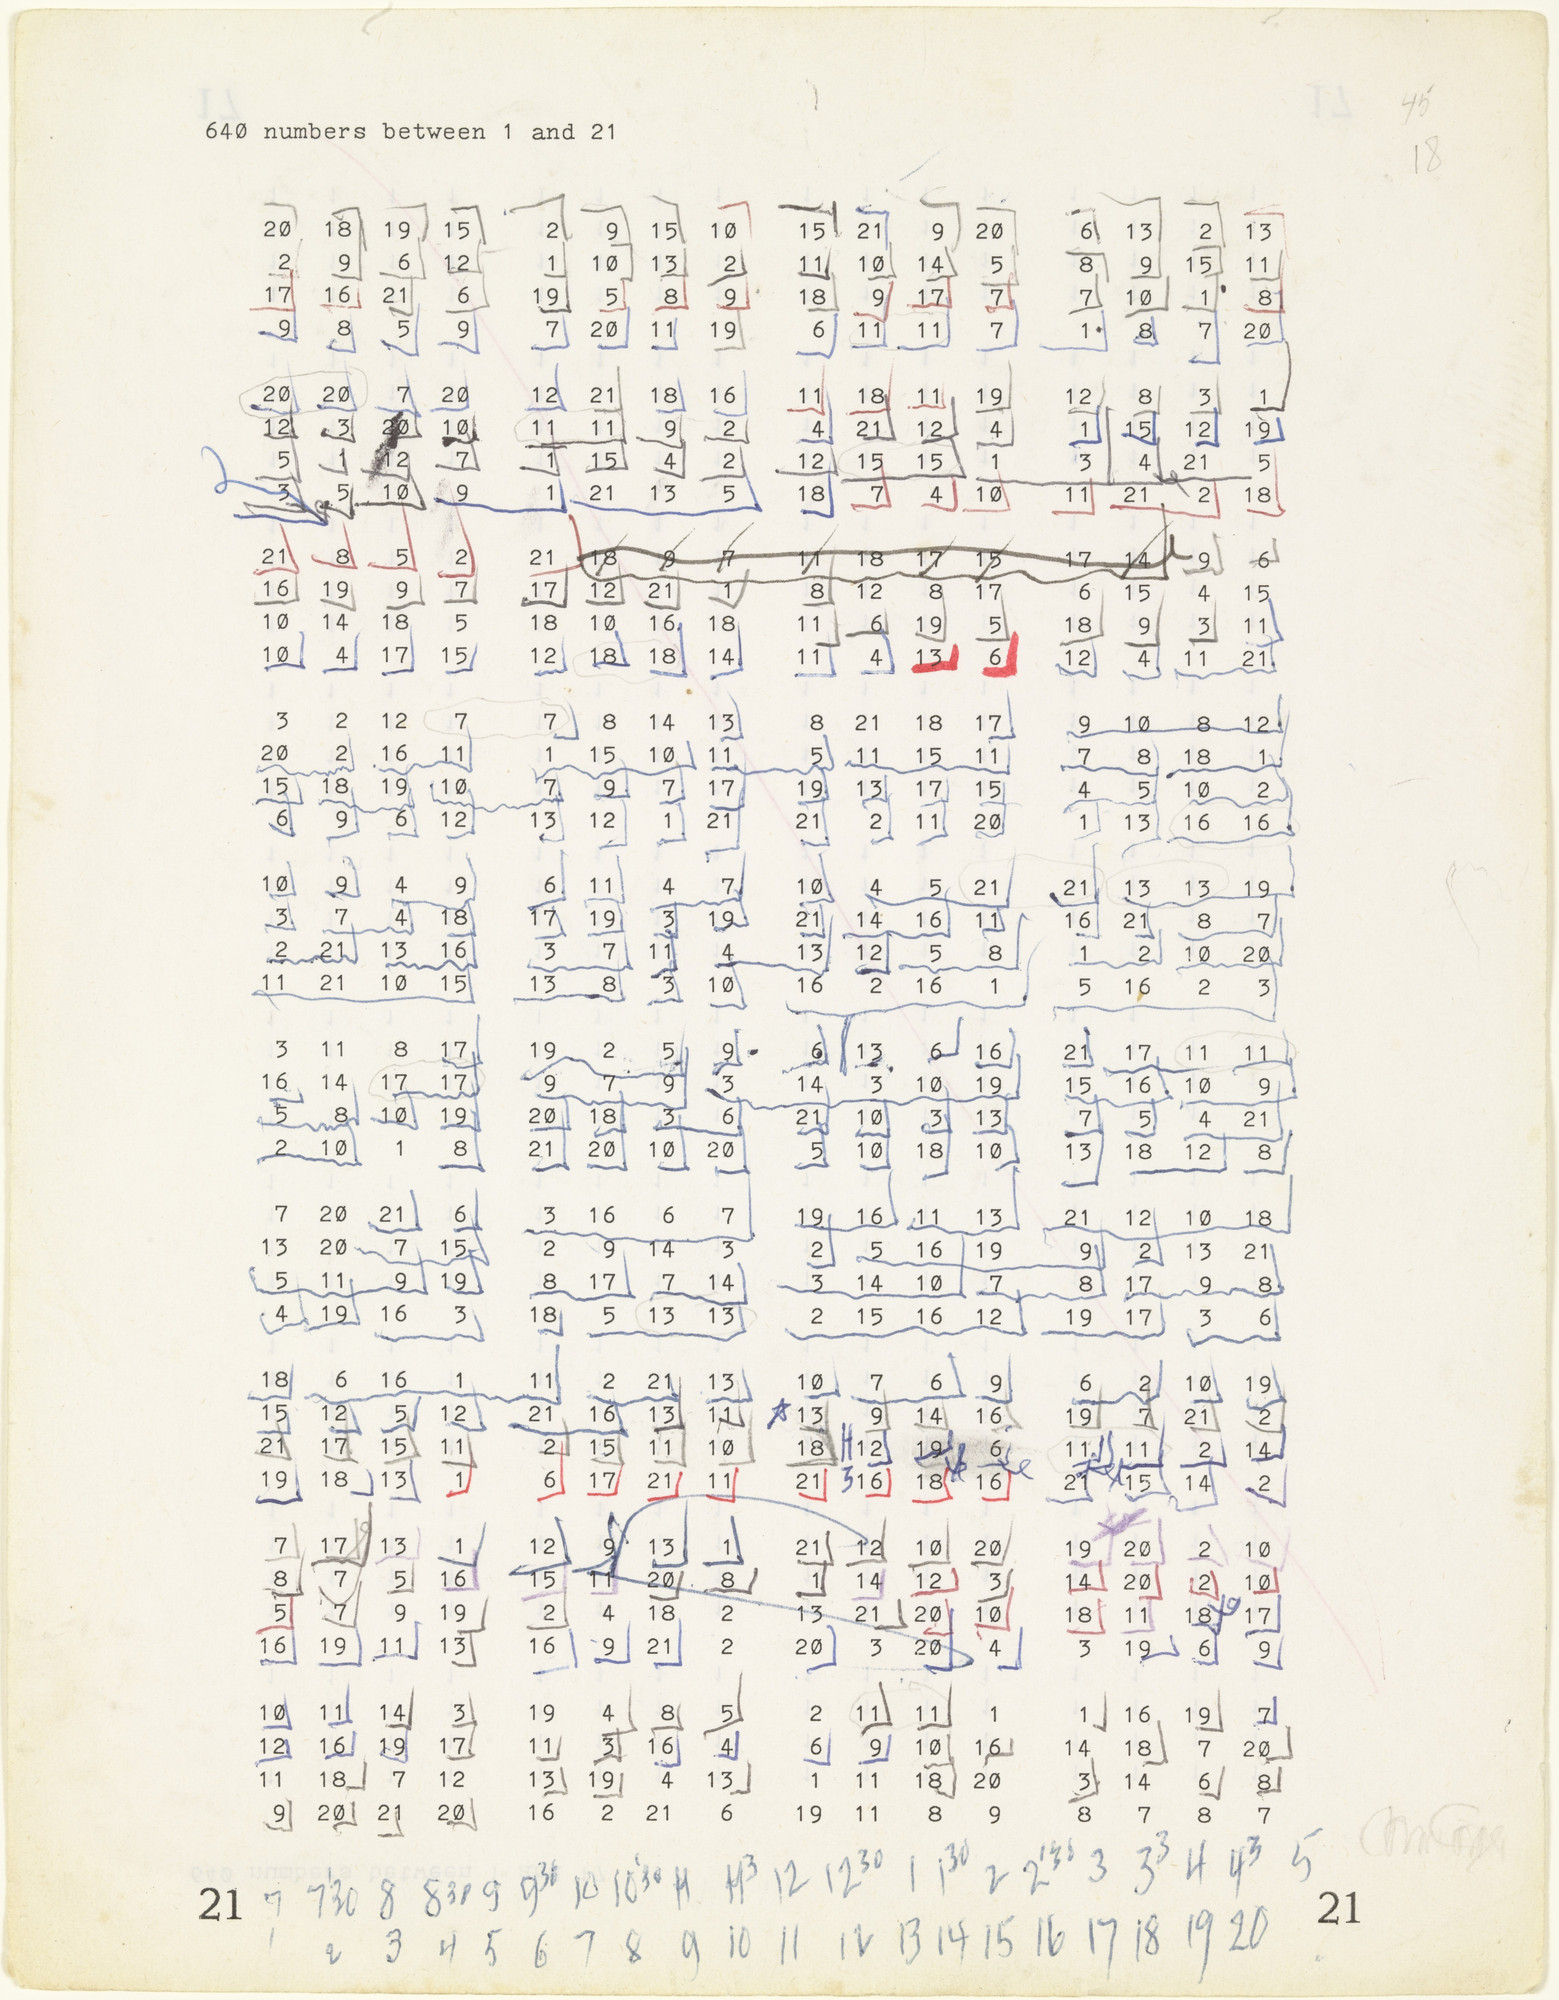 John Cage. Untitled (640 numbers between 1 and 21). 1969